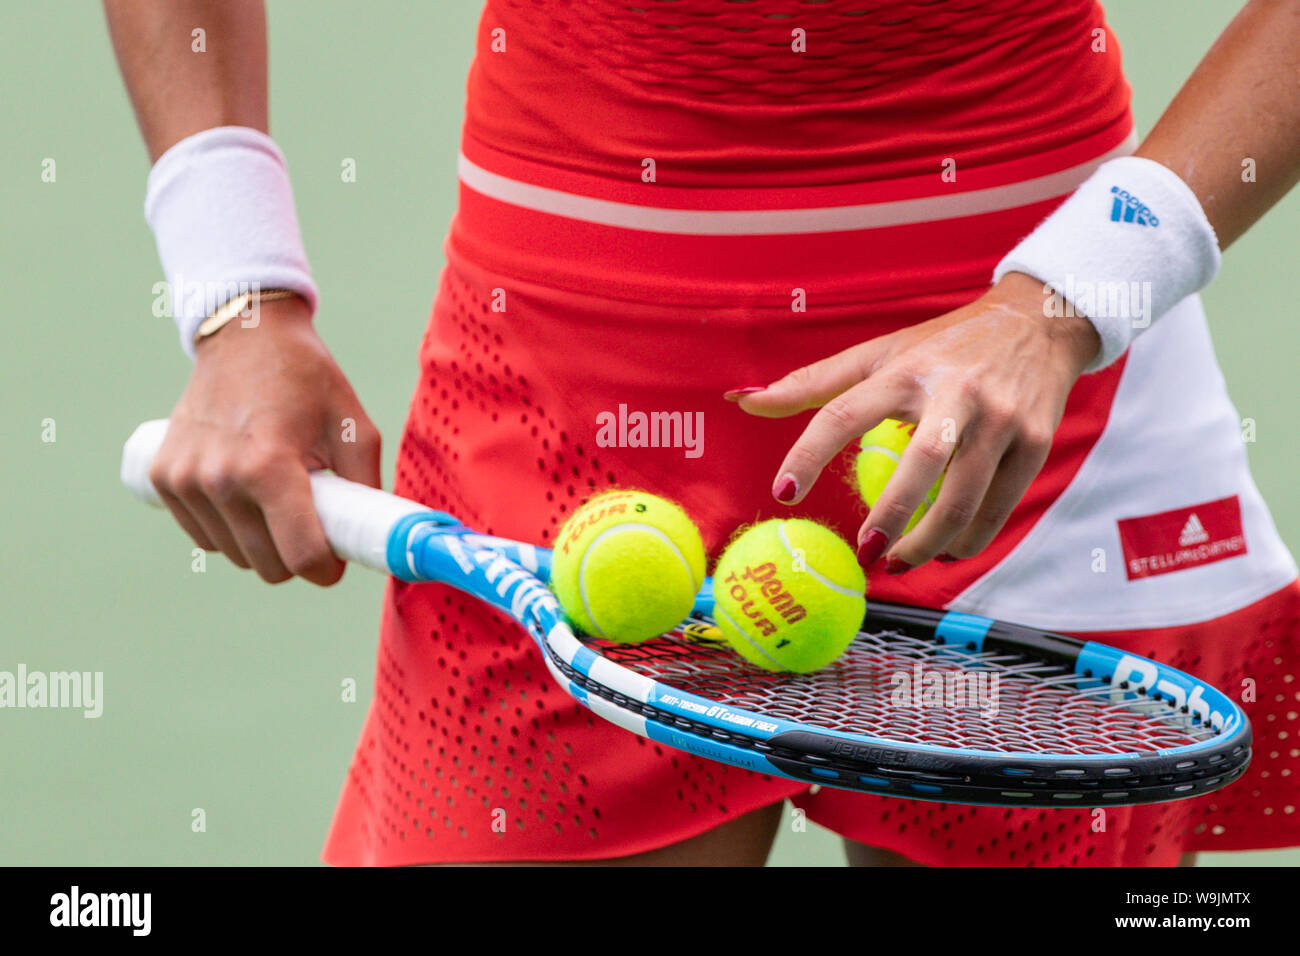 Mason, Ohio, USA. 13th Aug, 2019. Garbine Muguruza (ESP) selects balls for play during Tuesday's round of the Western and Southern Open at the Lindner Family Tennis Center, Mason, Oh. Credit: Scott Stuart/ZUMA Wire/Alamy Live News Stock Photo